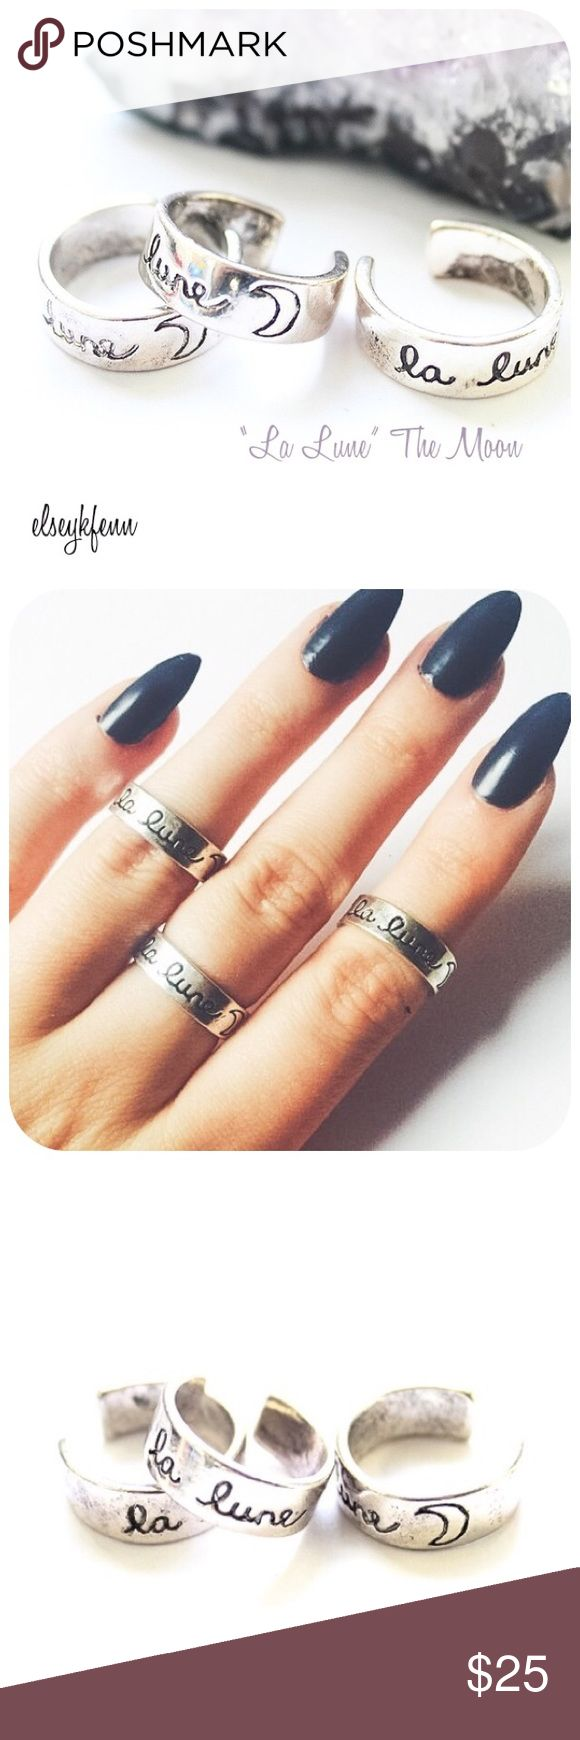 """BOGO 1/2 OFF❗️ [nip] La Lune ring """"La Lune"""" open-back ring translated from French meaning """"The Moon""""  Ring size 5.  May be worn normally or as a midi. Crafted base metal w/ antique silver finish. Hand-stamped in cursive writing beside a moon imprint. Handcrafted with love in the USA   no trades ∣ price firm ∣ brand new in manufacturer packaging     ♕ shop with confidence ♕ ☆☆☆ Suggested User ☆☆☆ Twilight Gypsy Collective Jewelry Rings"""